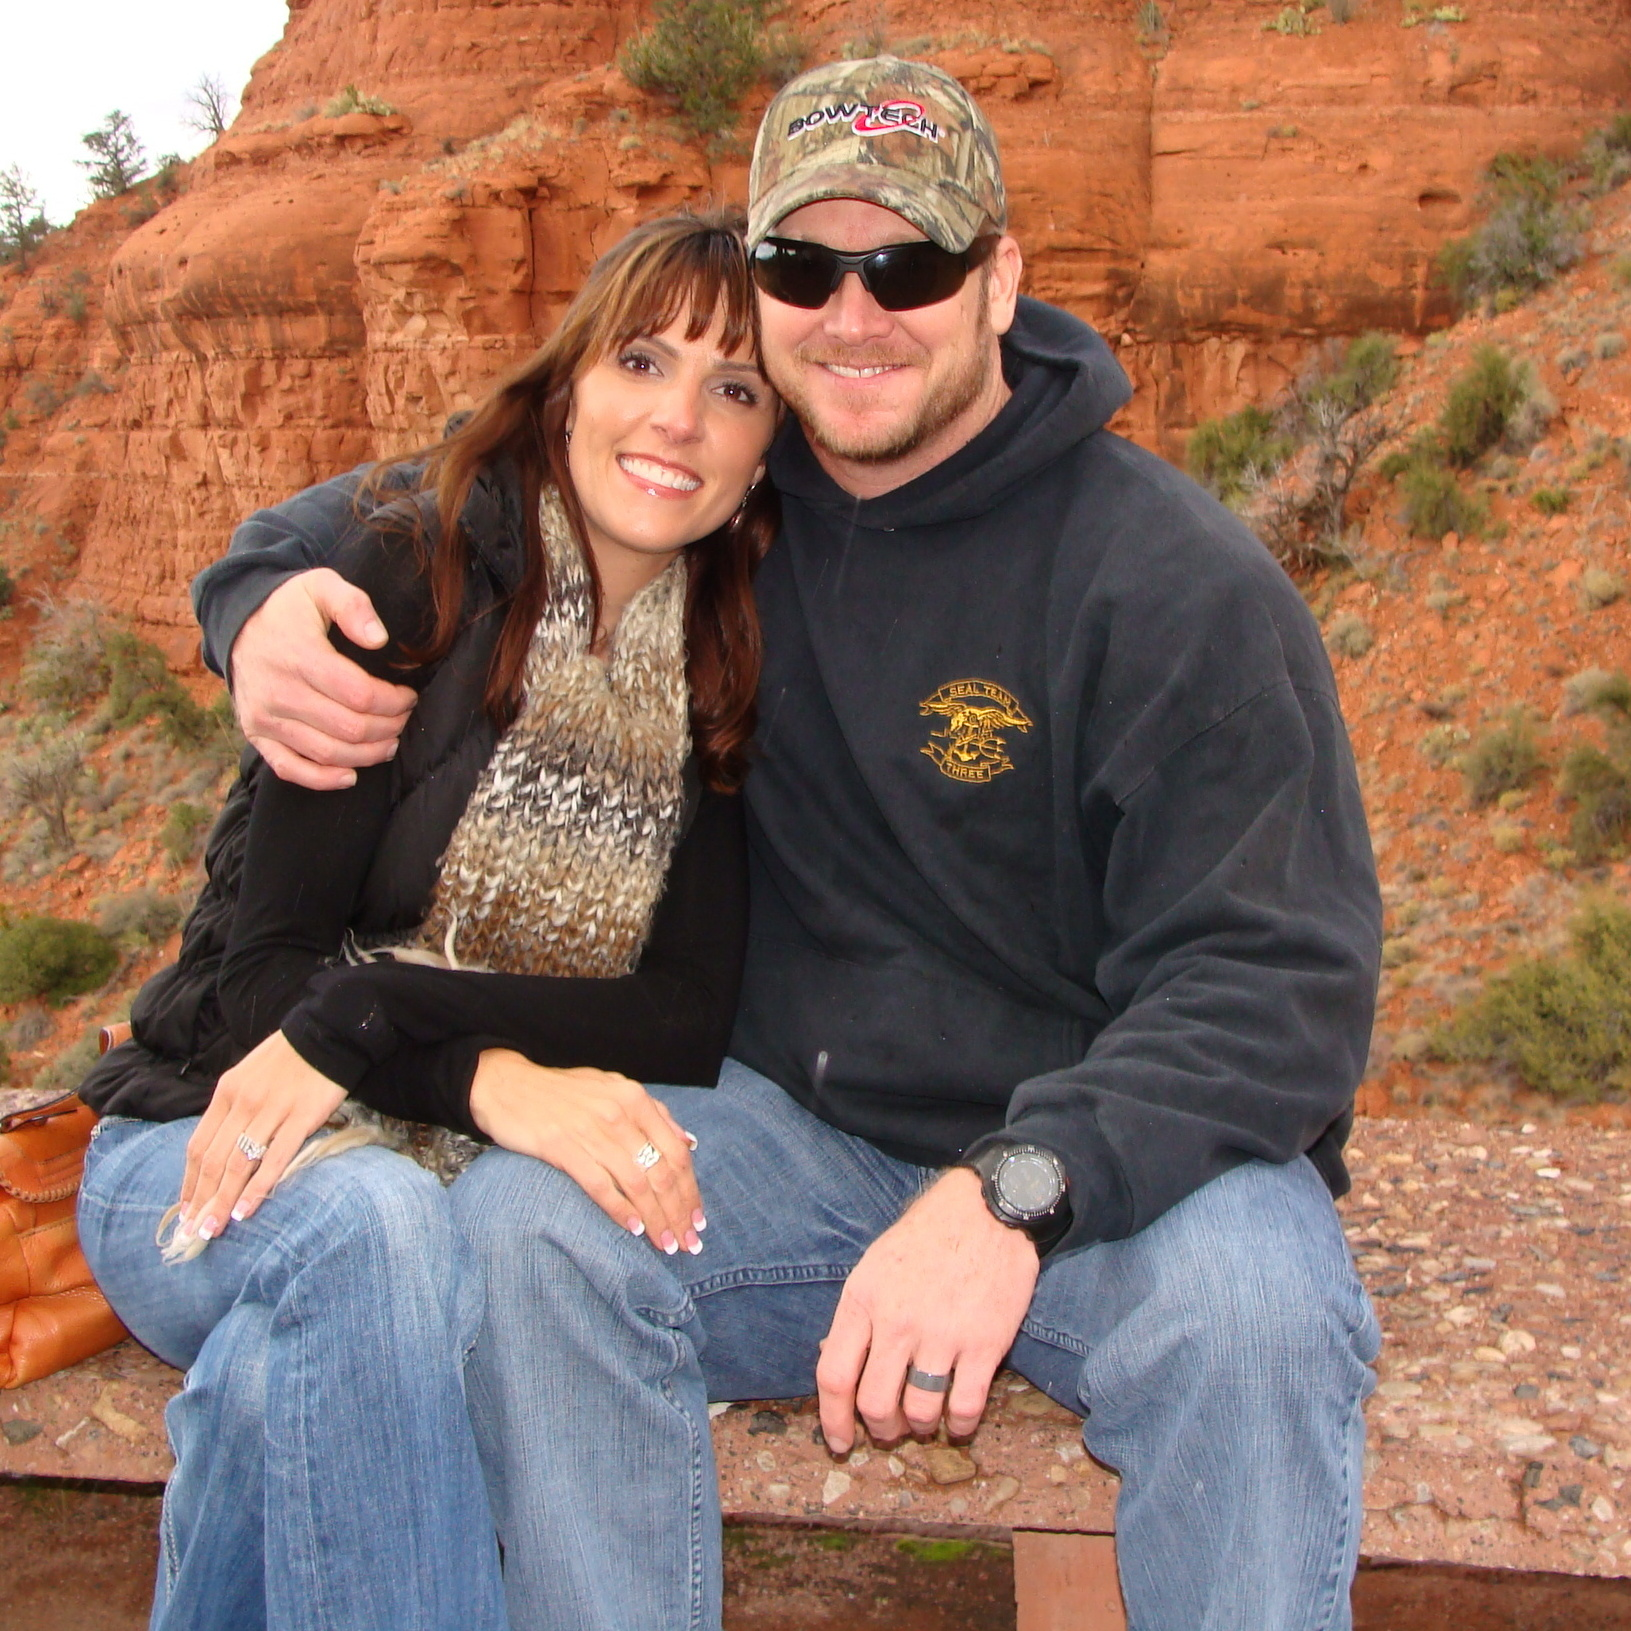 Author Chris Kyle and his wife, Taya, in Sedona, Ariz. Chris was killed in February 2013.